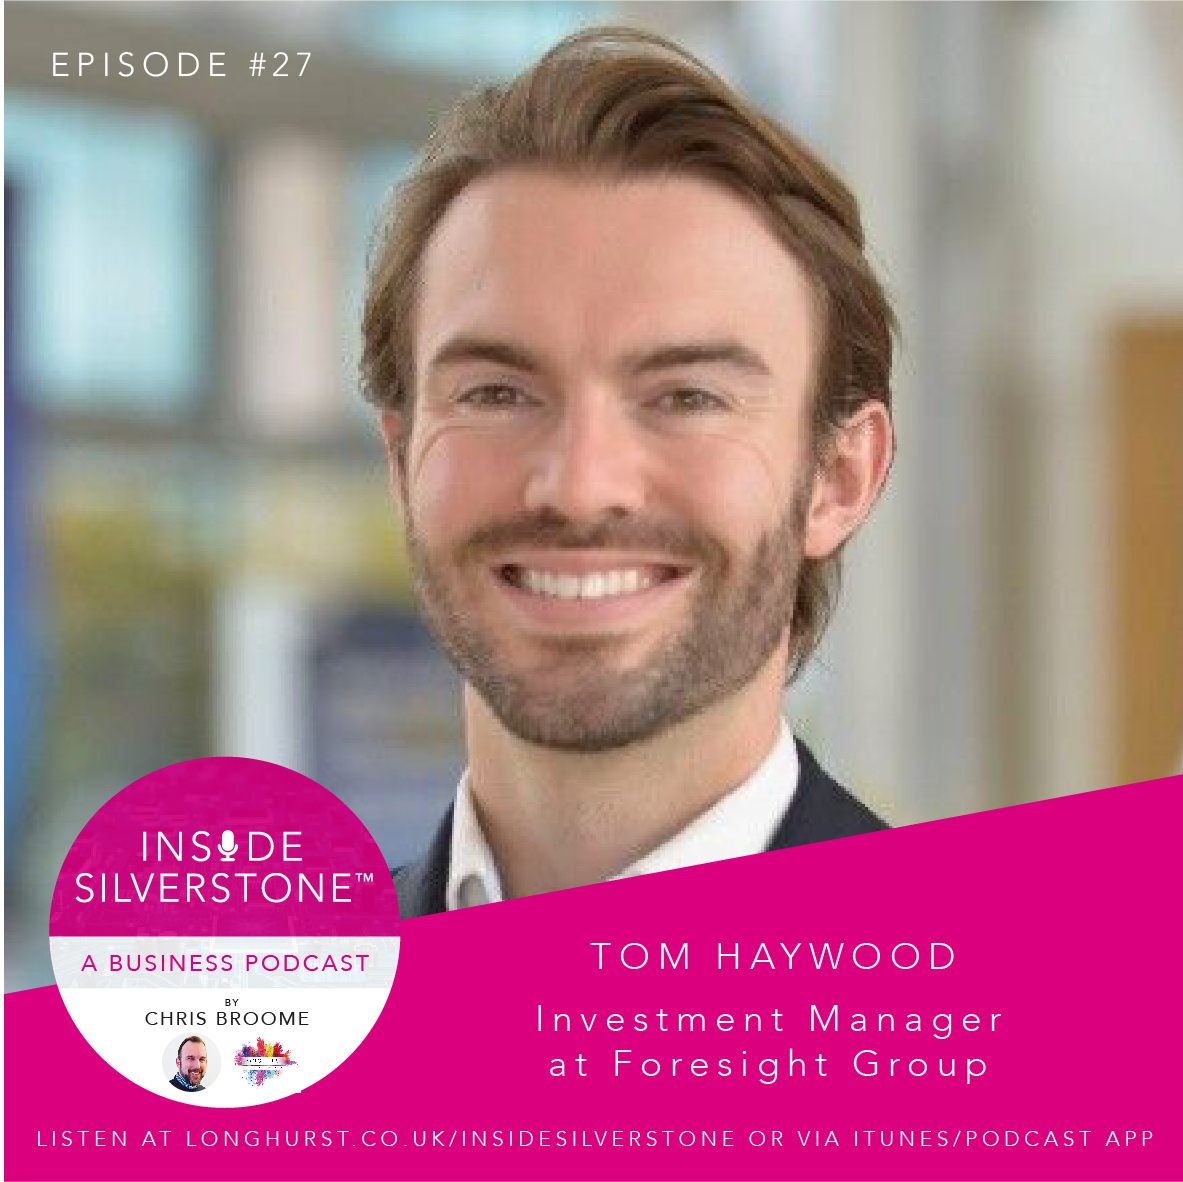 Tom Haywood, Investment Manager at Foresight Group